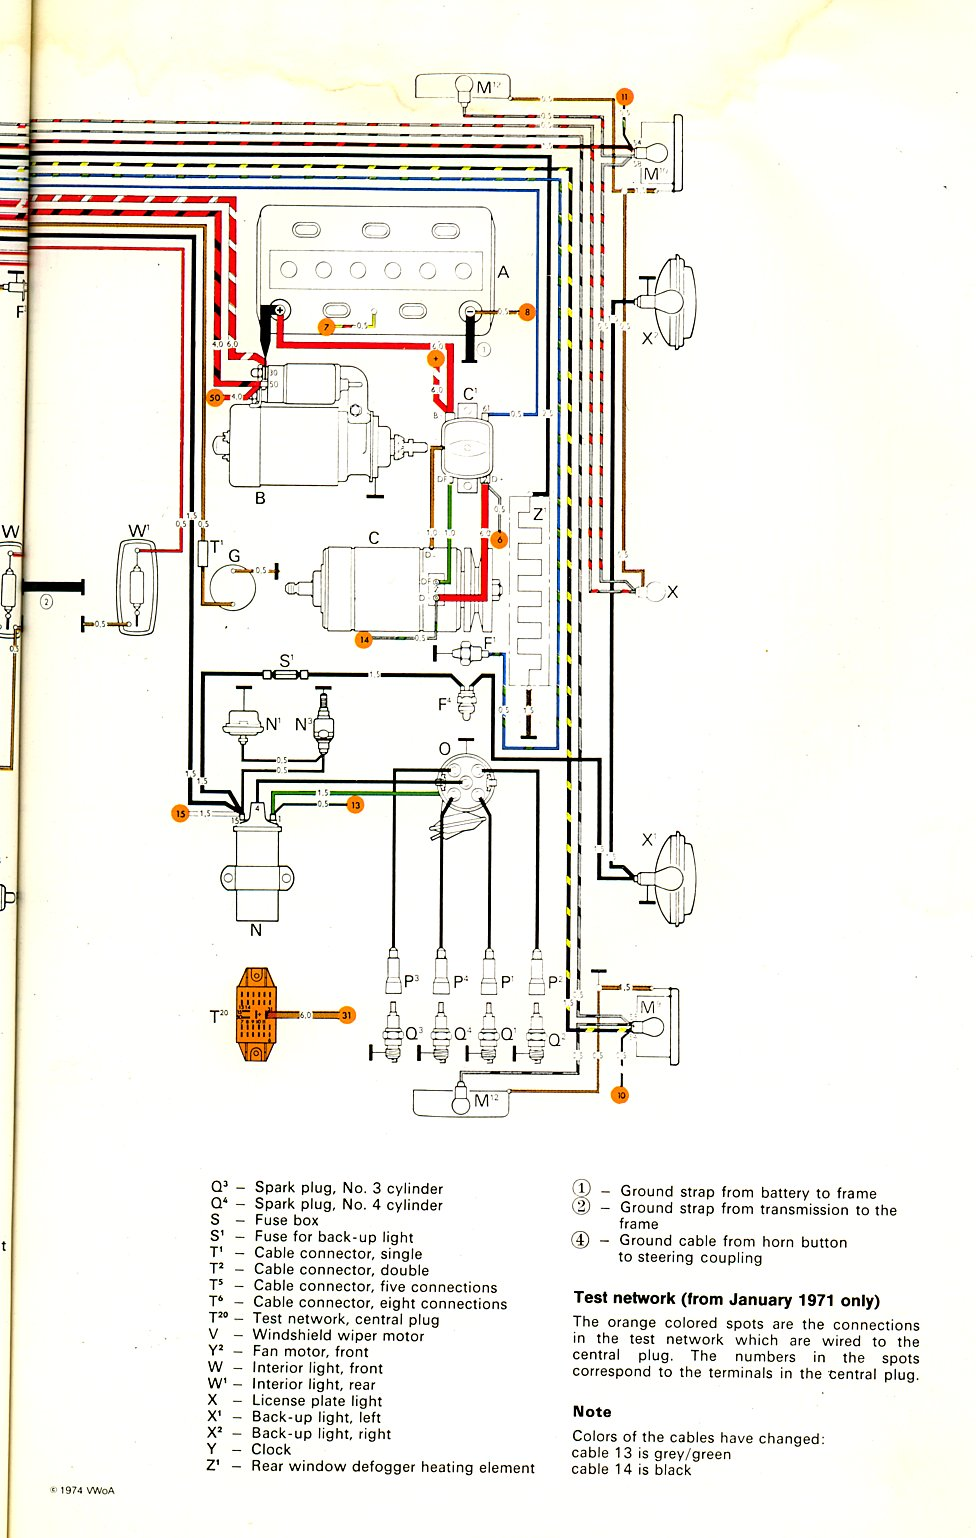 baybus_71b thesamba com type 2 wiring diagrams 1971 vw bus wiring diagram at mifinder.co